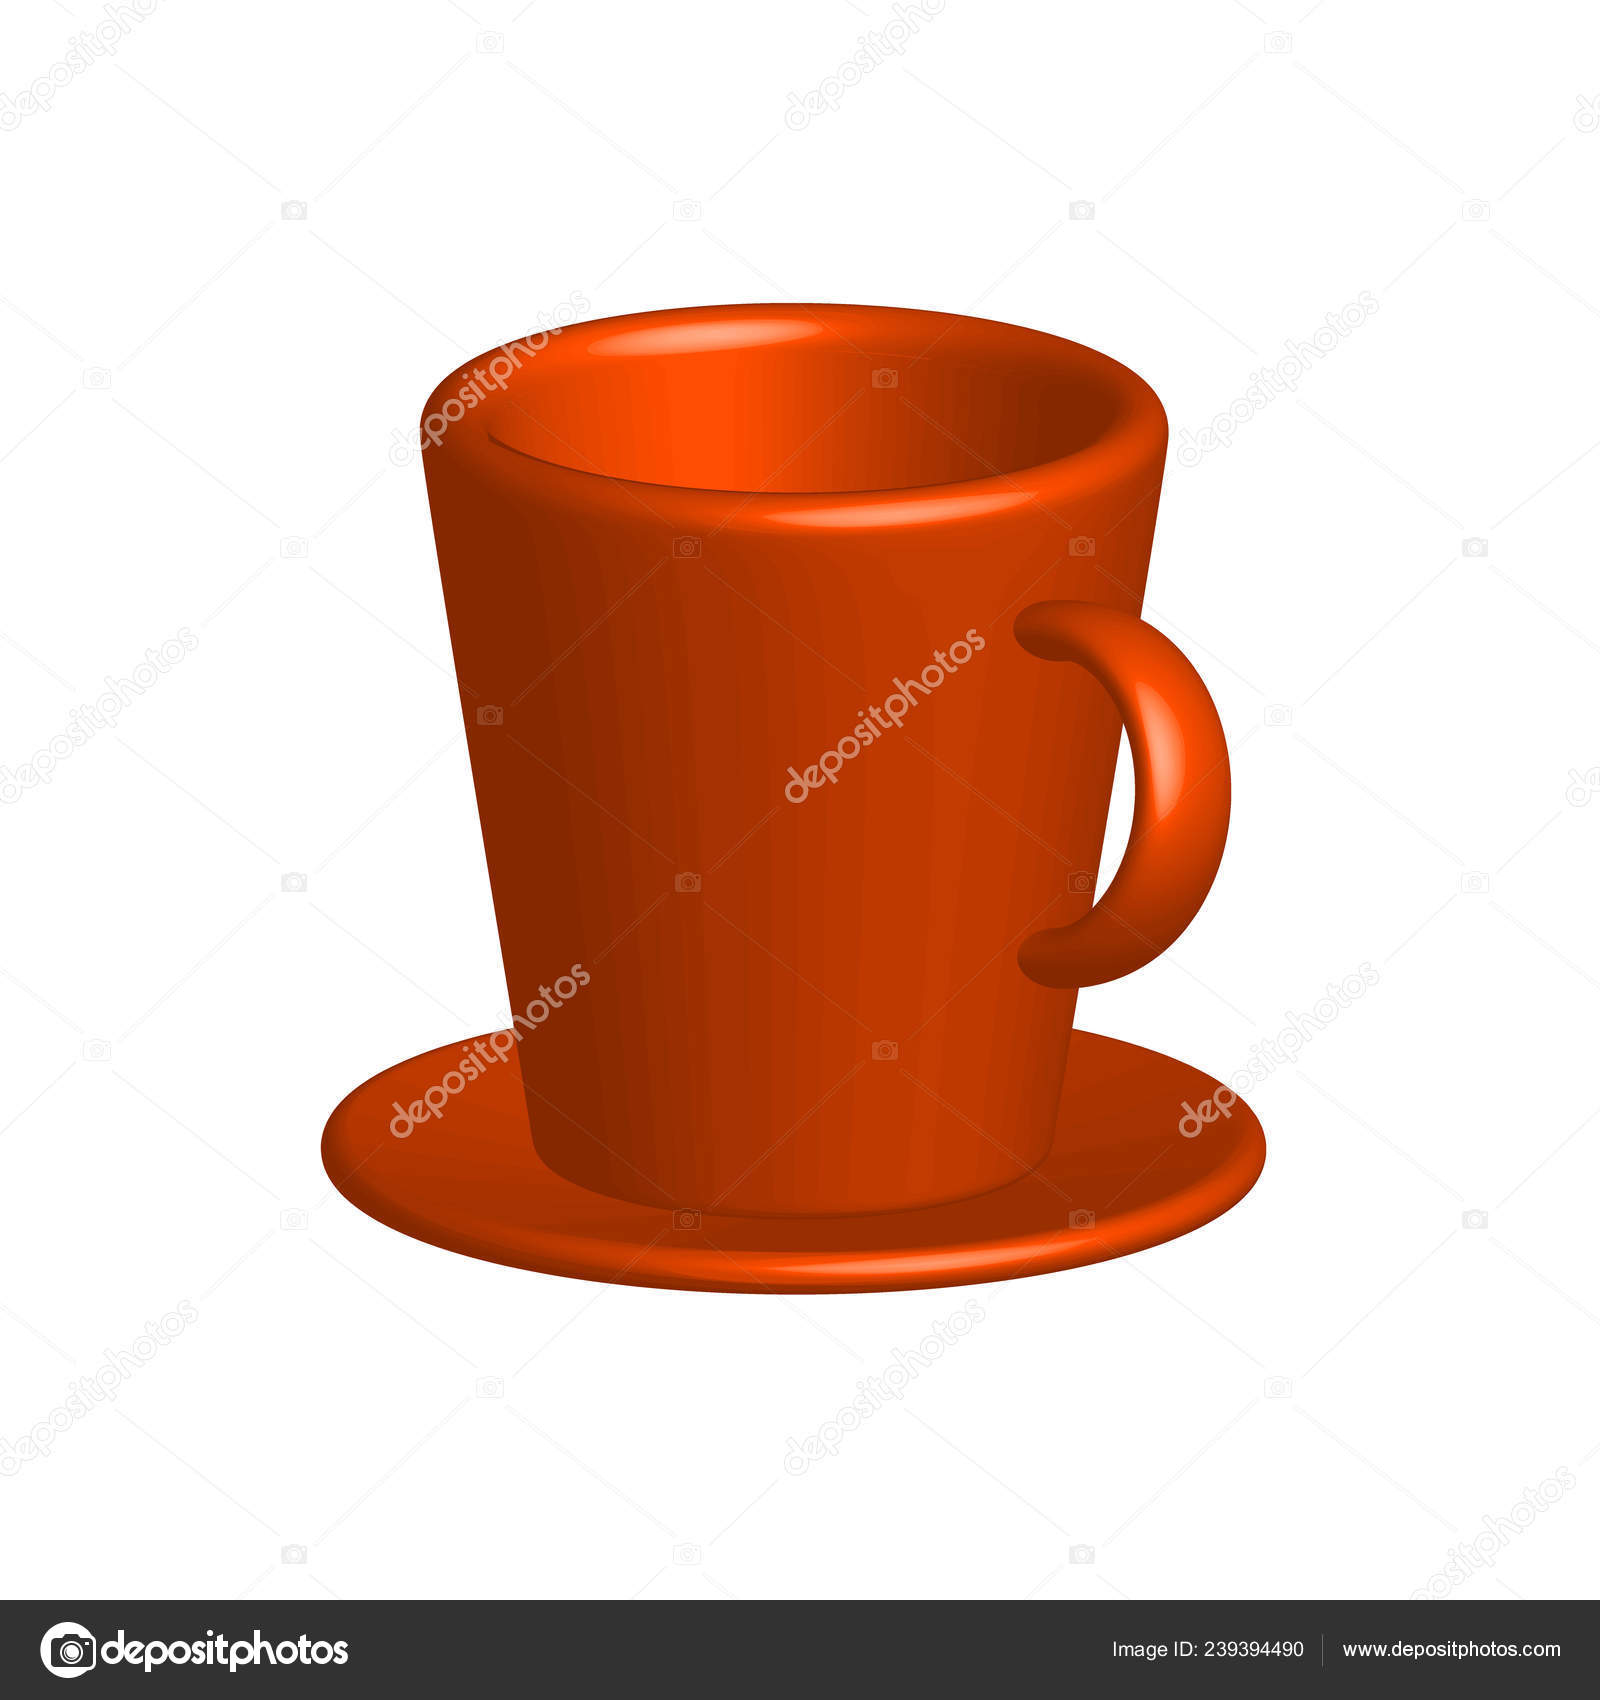 Realistic Colorful Drawing Bright Cup Saucer Isolated White Background Vector Image By C Kulish Ev79 Gmail Com Vector Stock 239394490